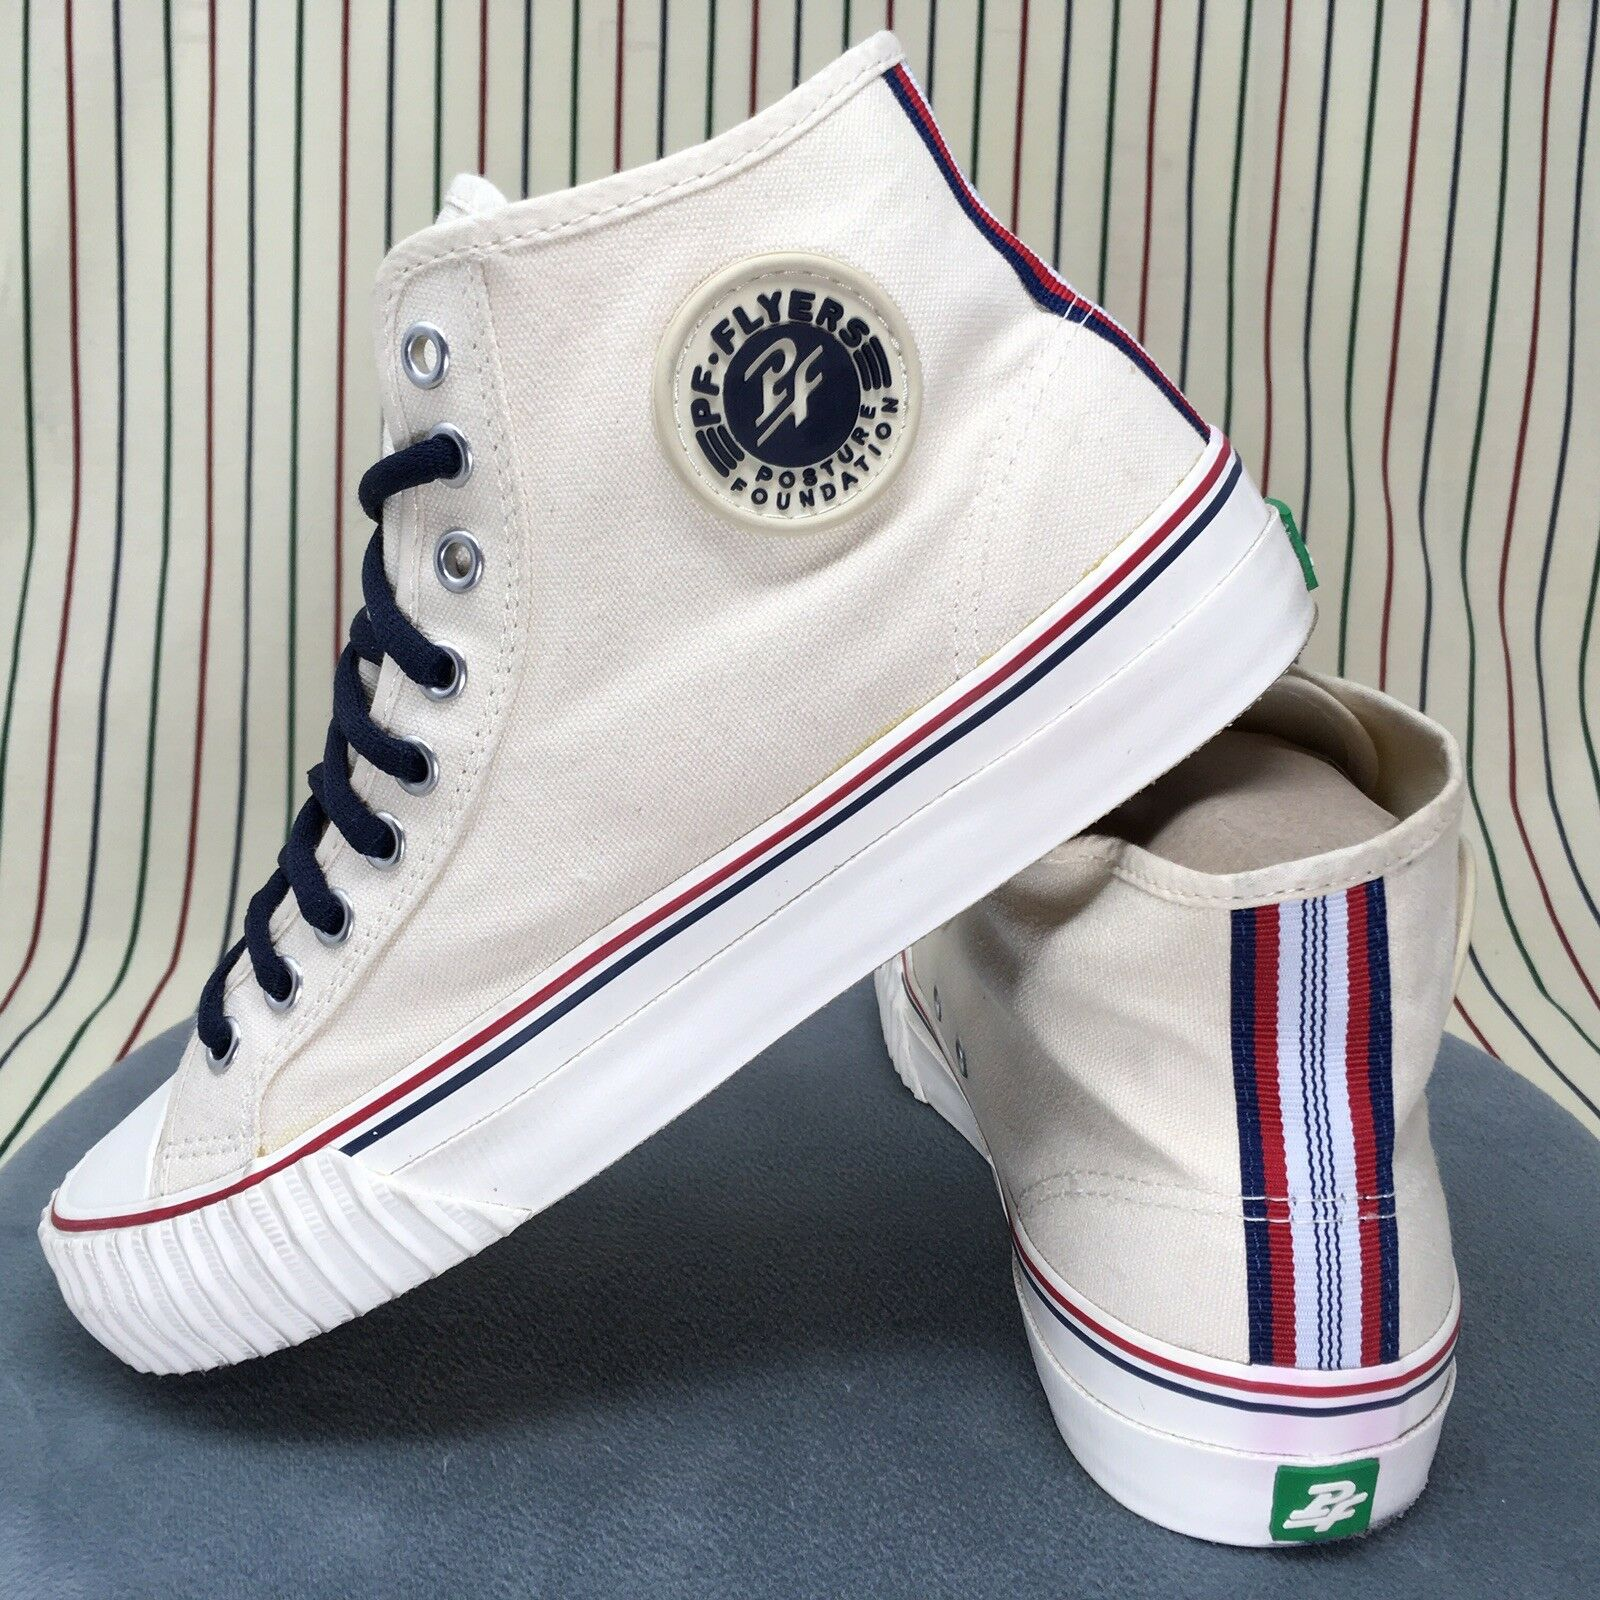 014 PF Flyers High Top shoes Mens WHITE Canvas Athletic Sneakers Size 9 Vintage